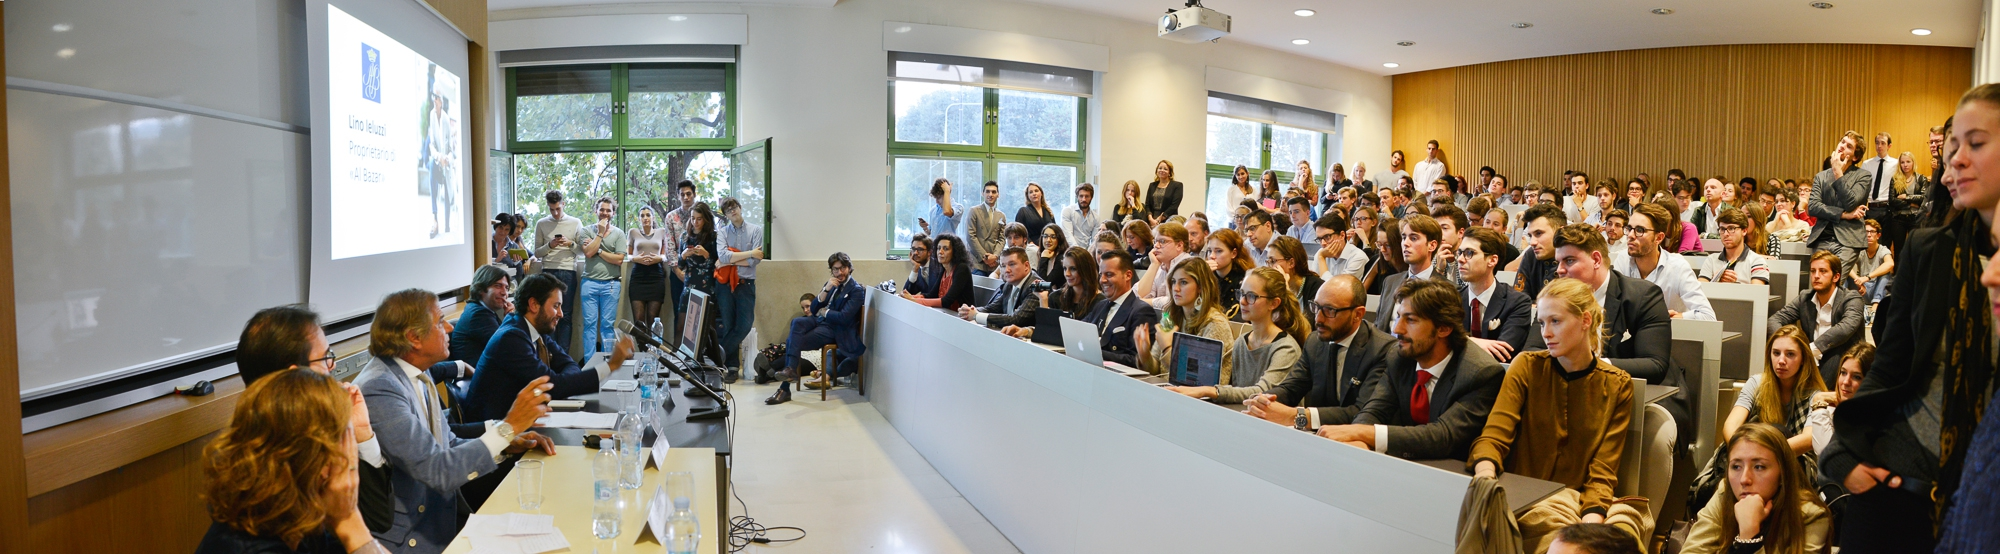 The New Bespoke - Conference at Bocconi University